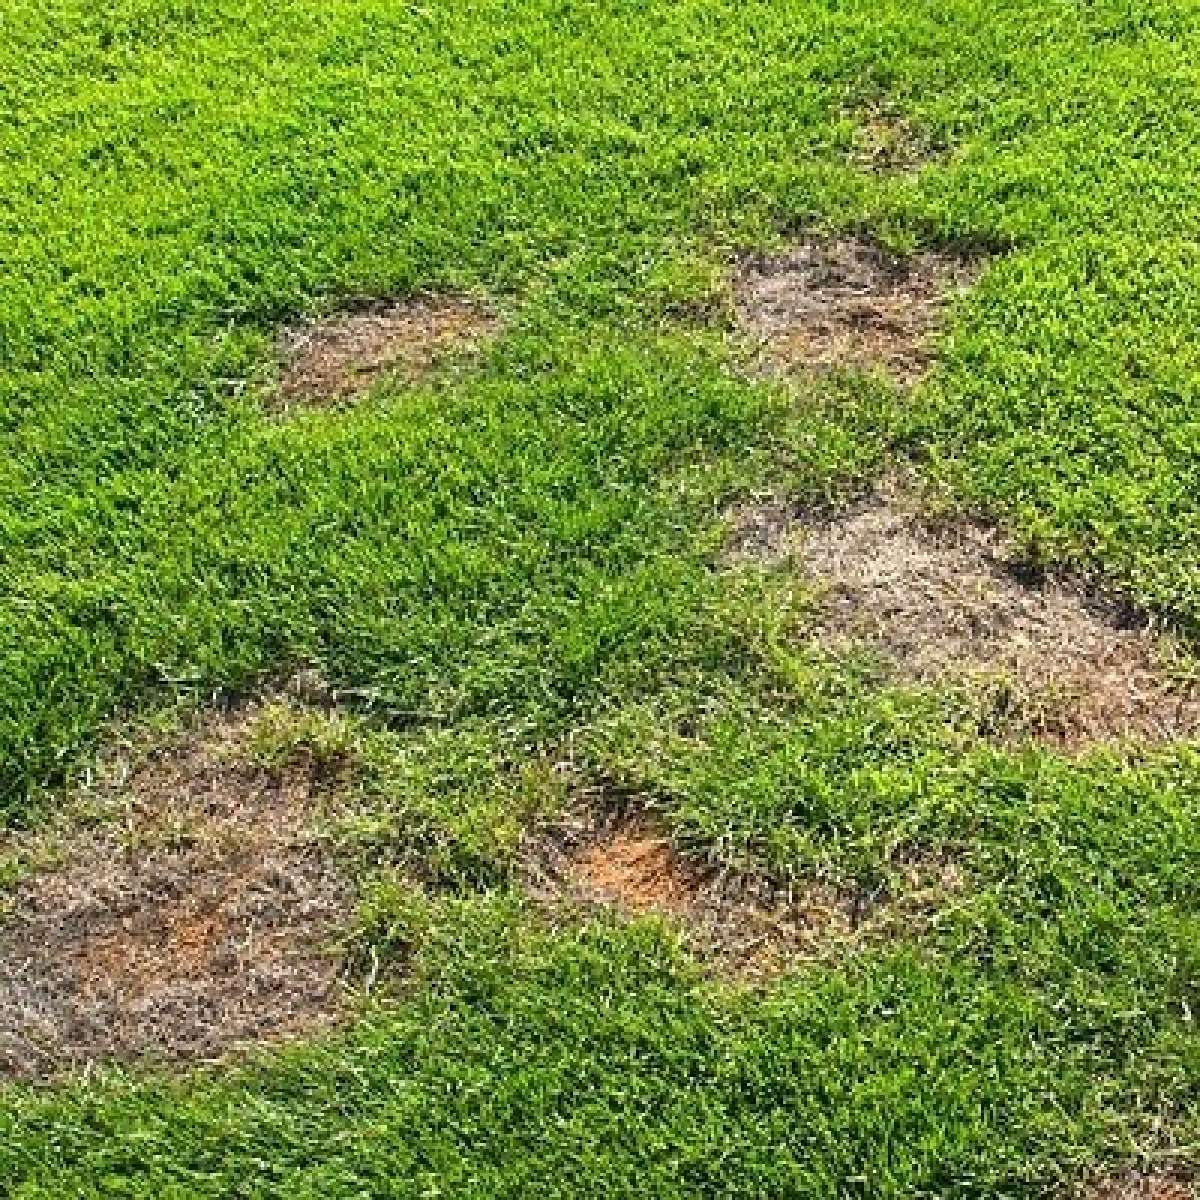 How to fix bald spots in lawn